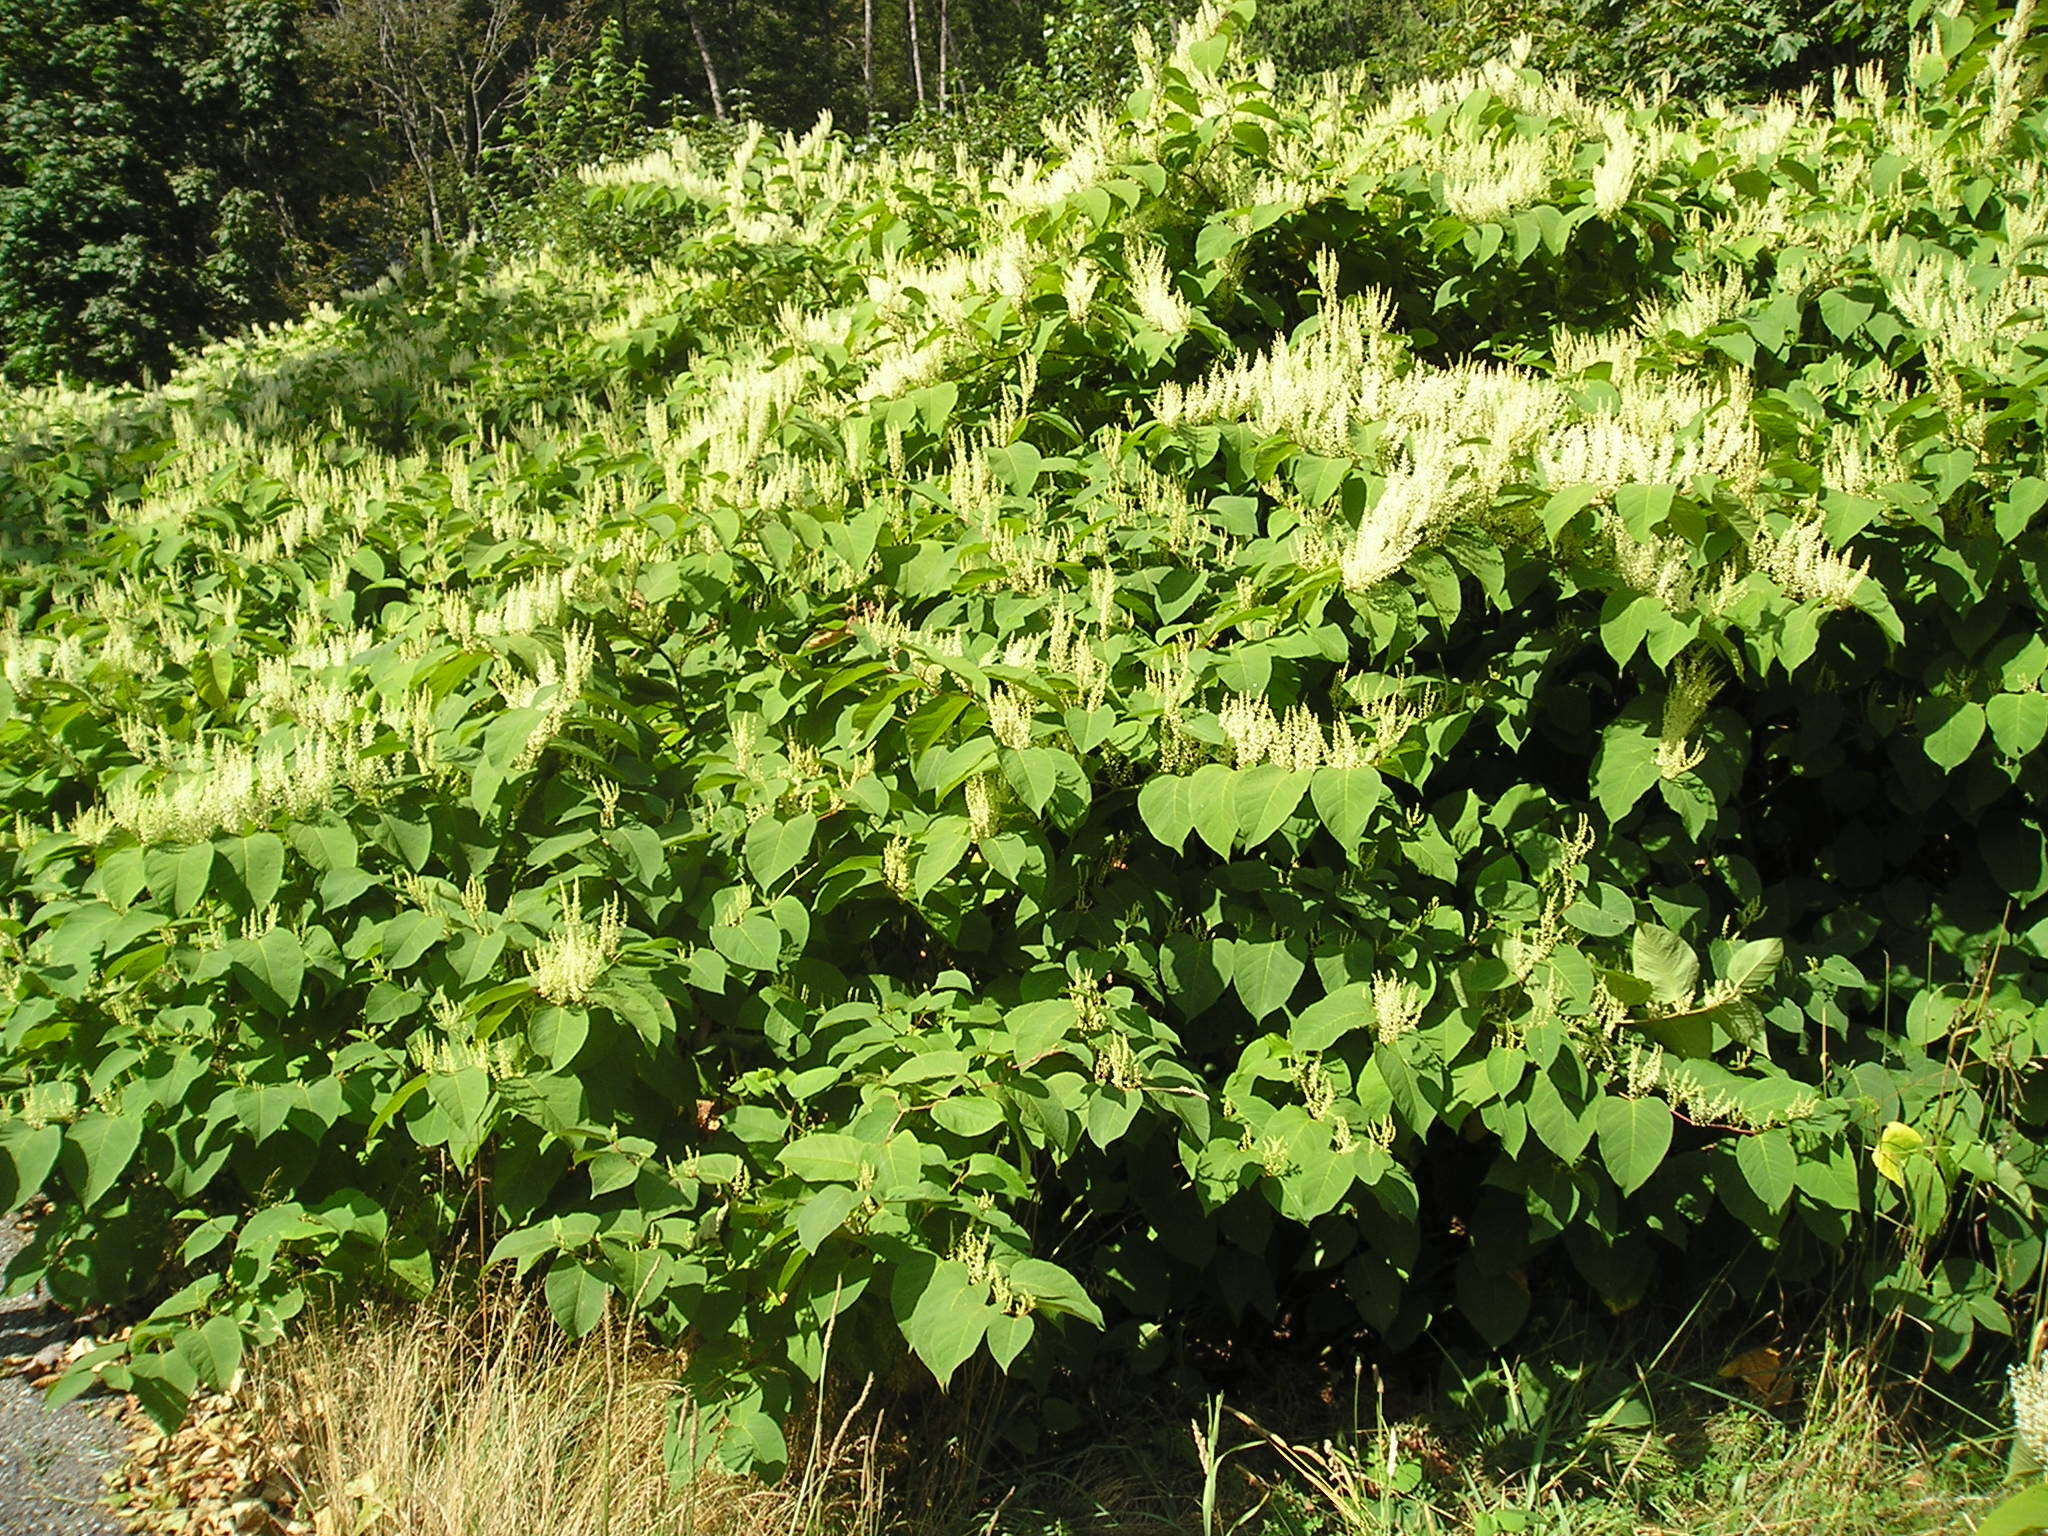 Knotweed by Beckler River Rd